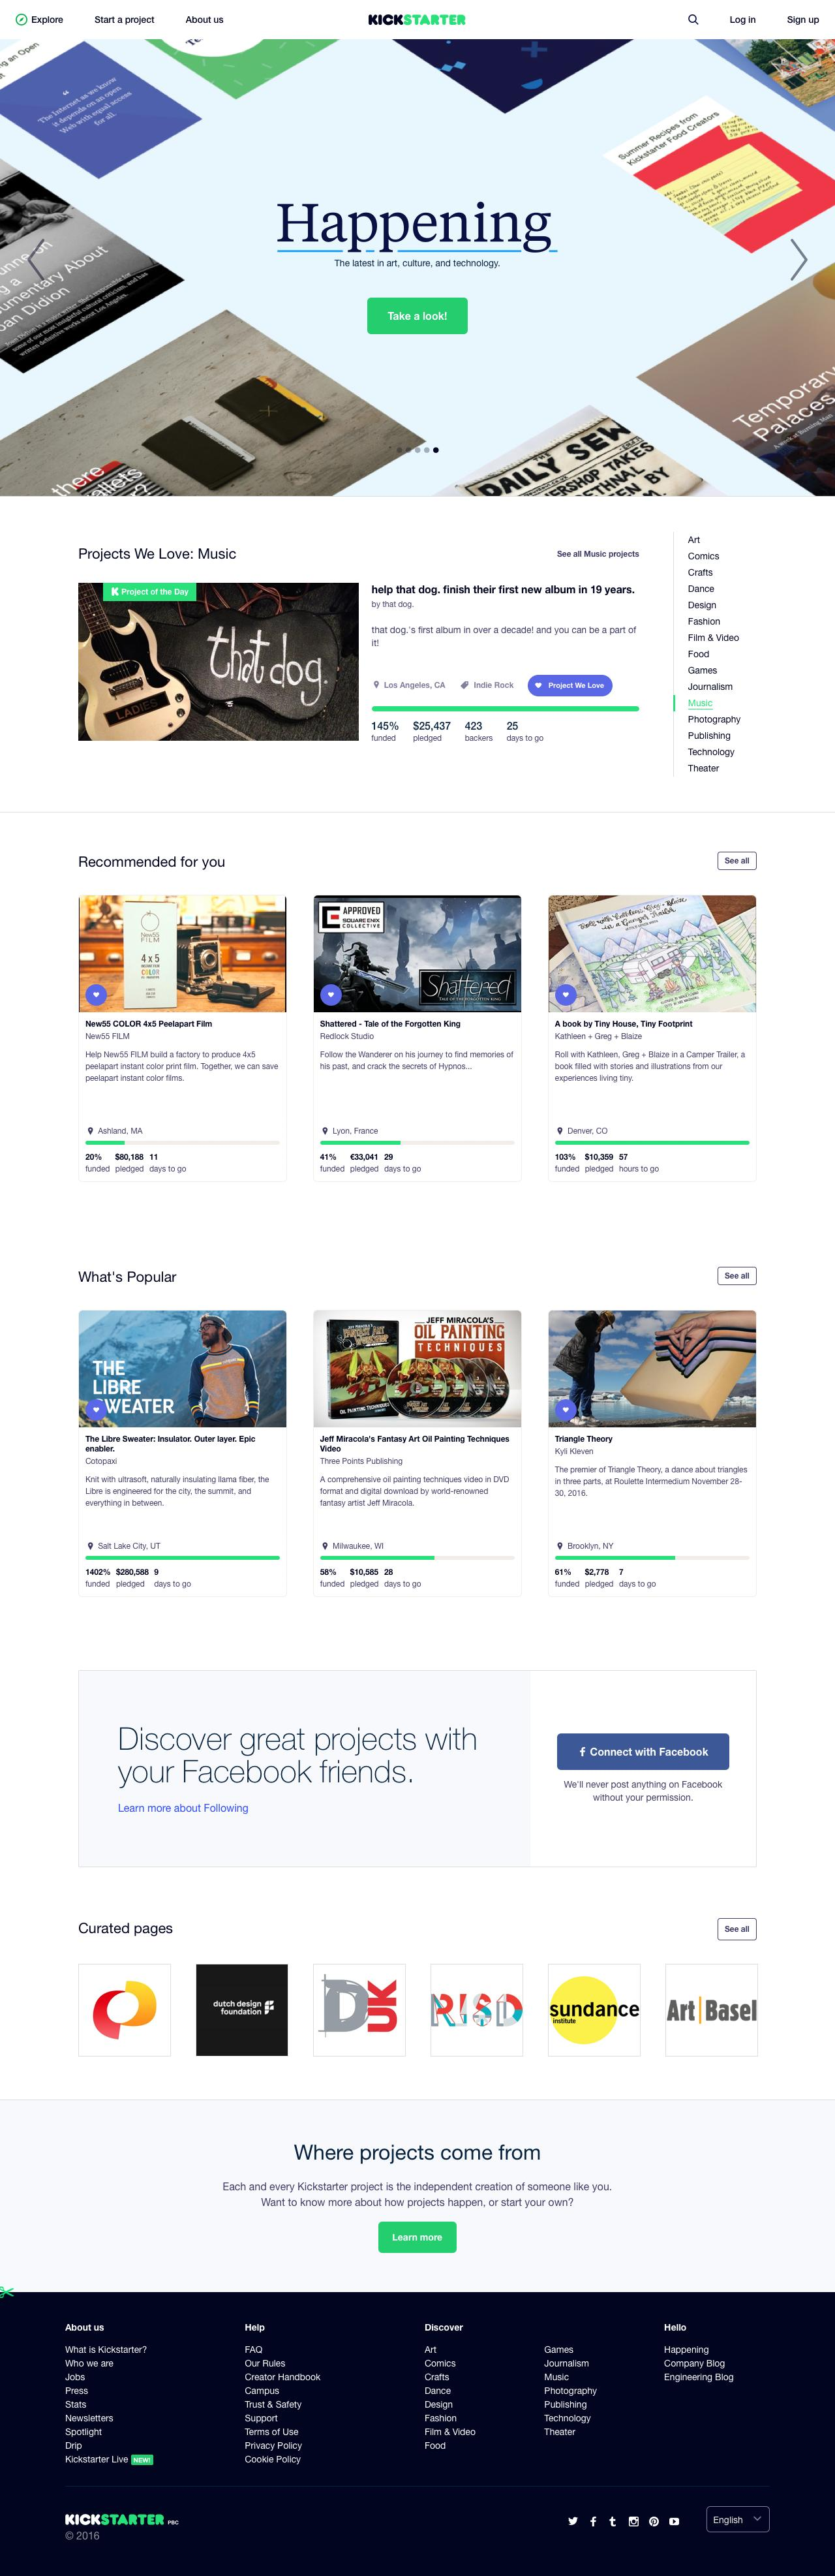 Screenshot of kickstarter.com - Kickstarter - captured Nov. 7, 2016